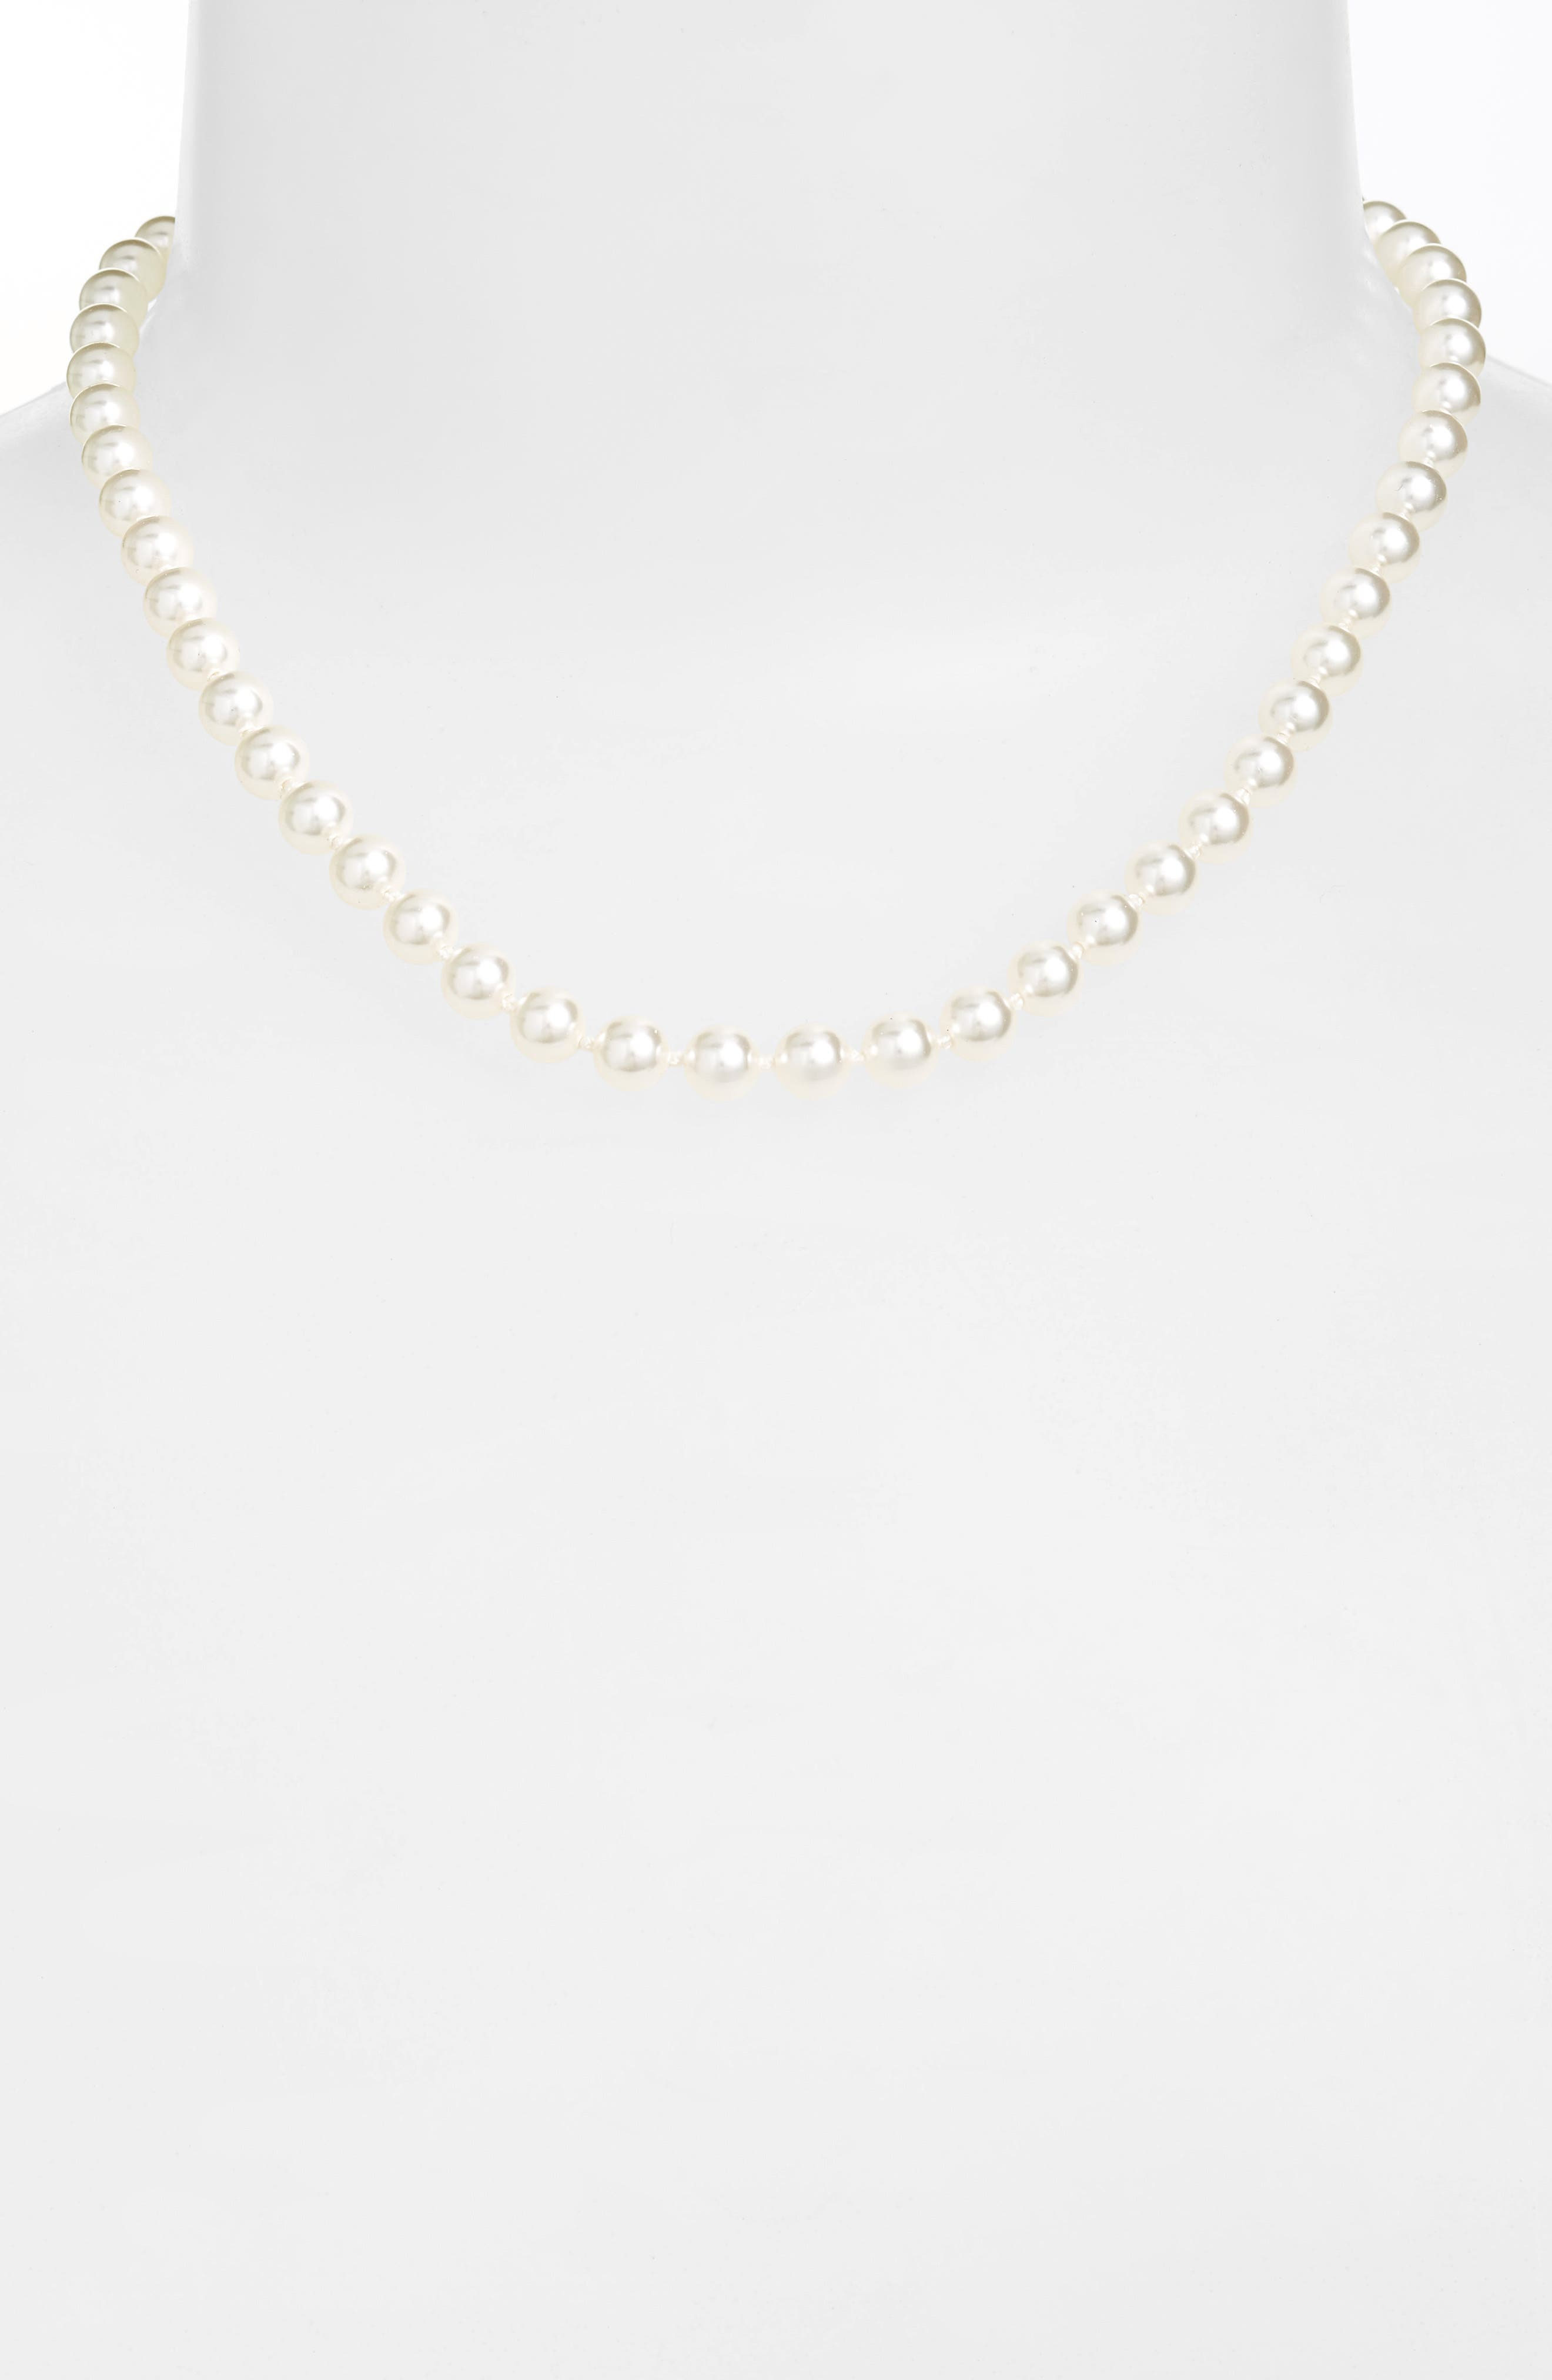 16-Inch Glass Pearl Strand Necklace,                         Main,                         color, White Pearl